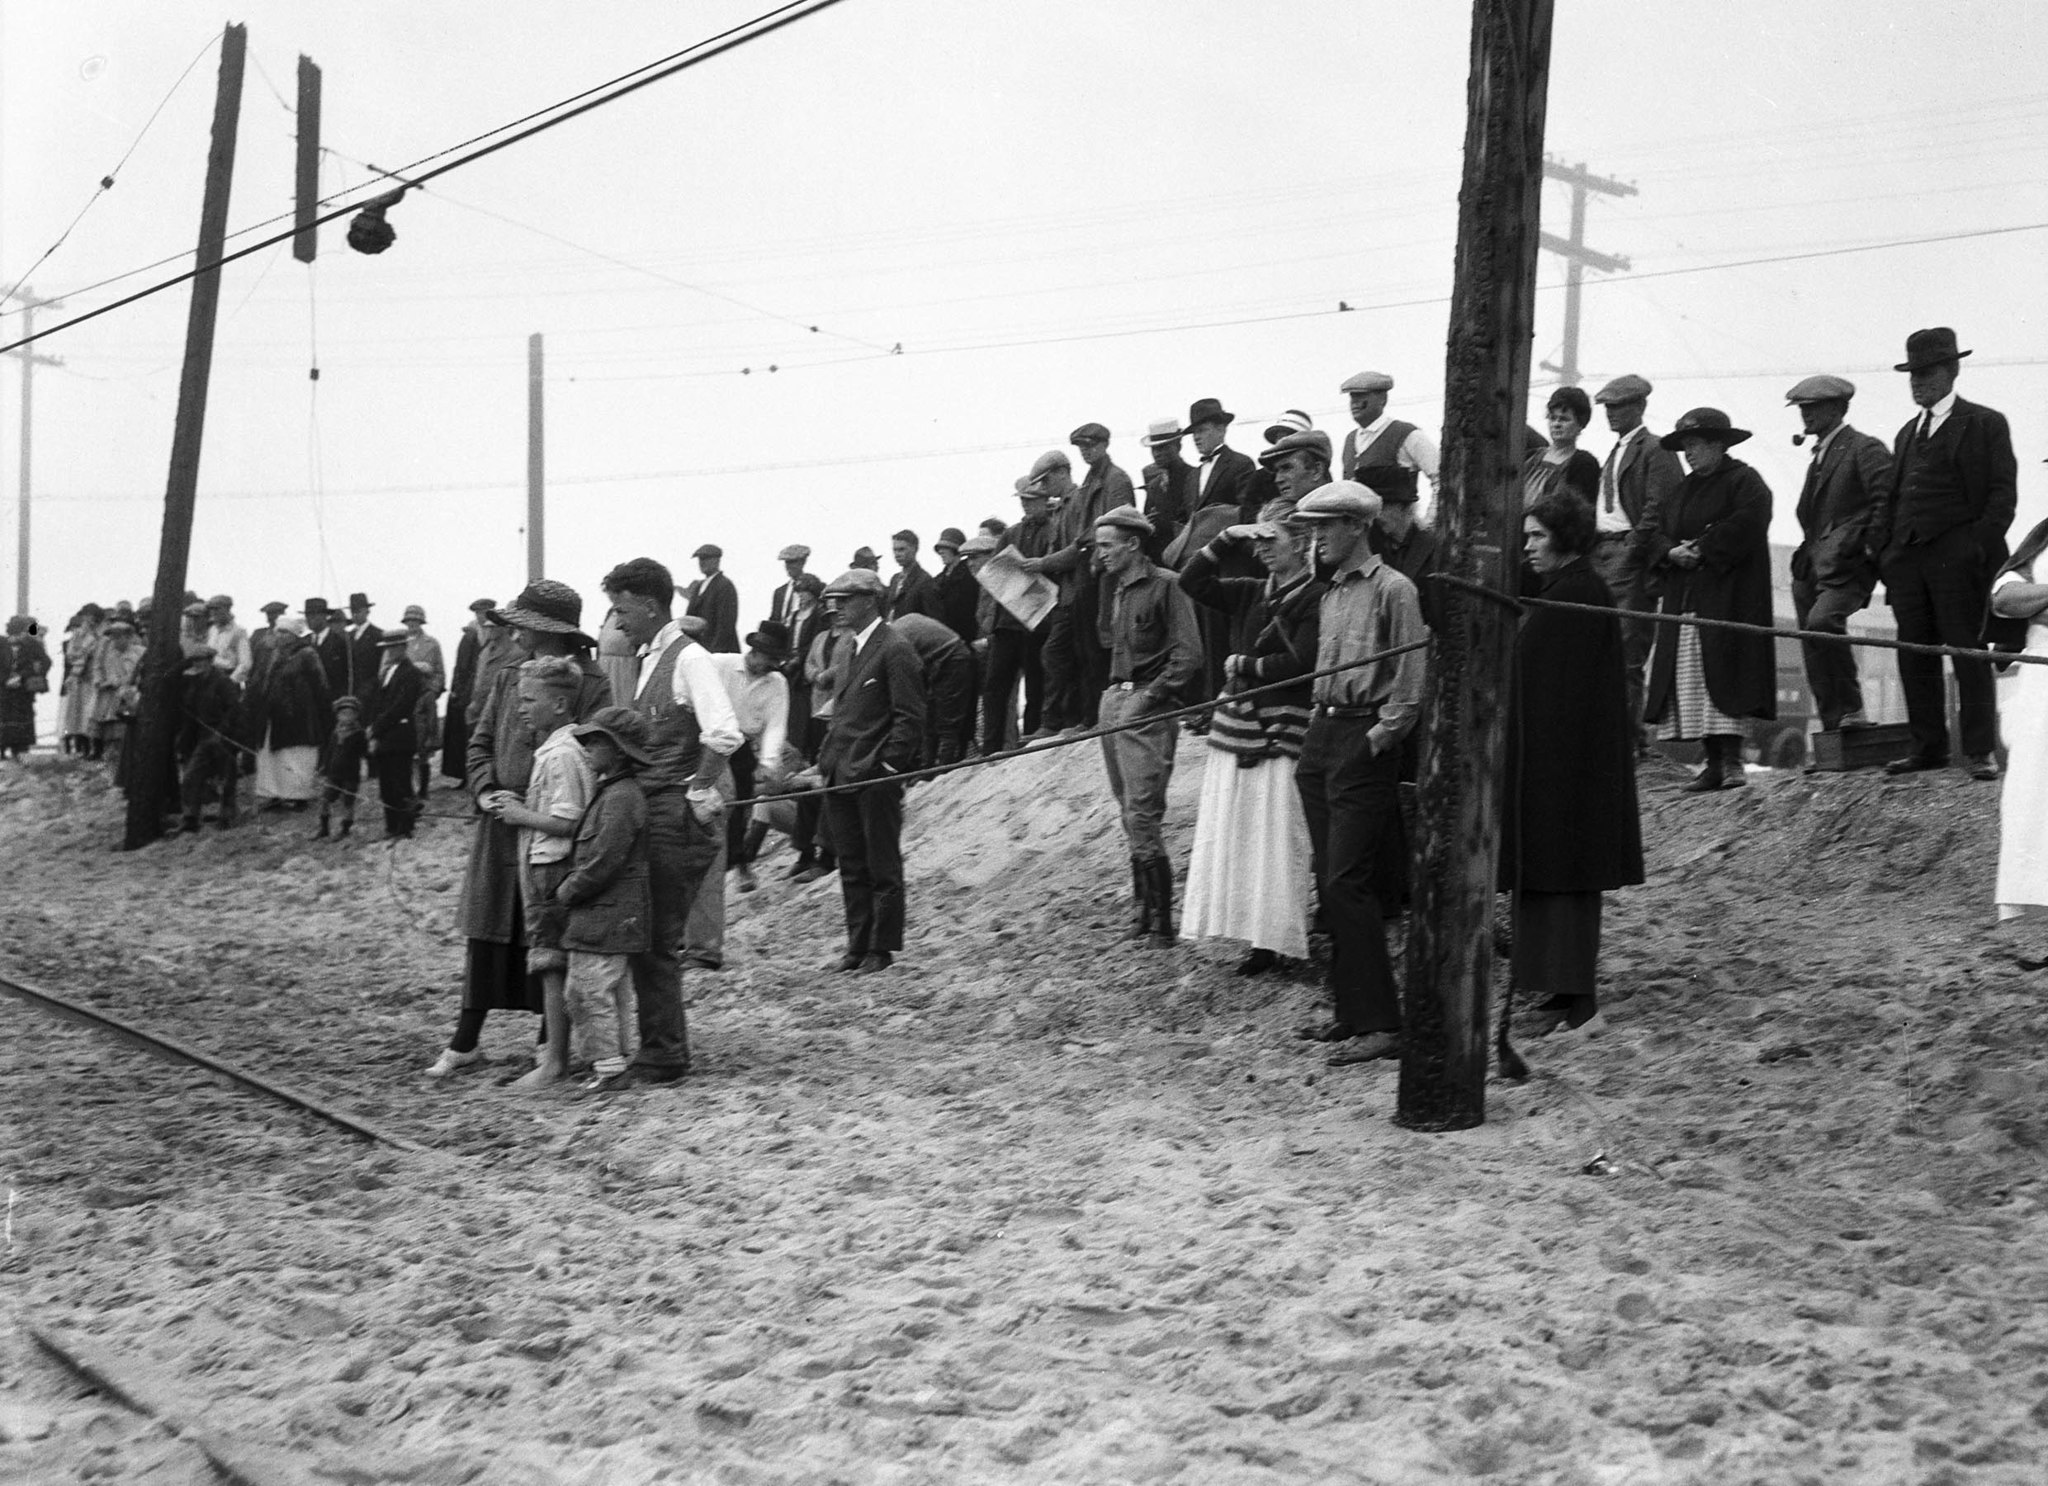 June 1, 1924: Spectators looking towards the charred remains of the Hope Development School for men